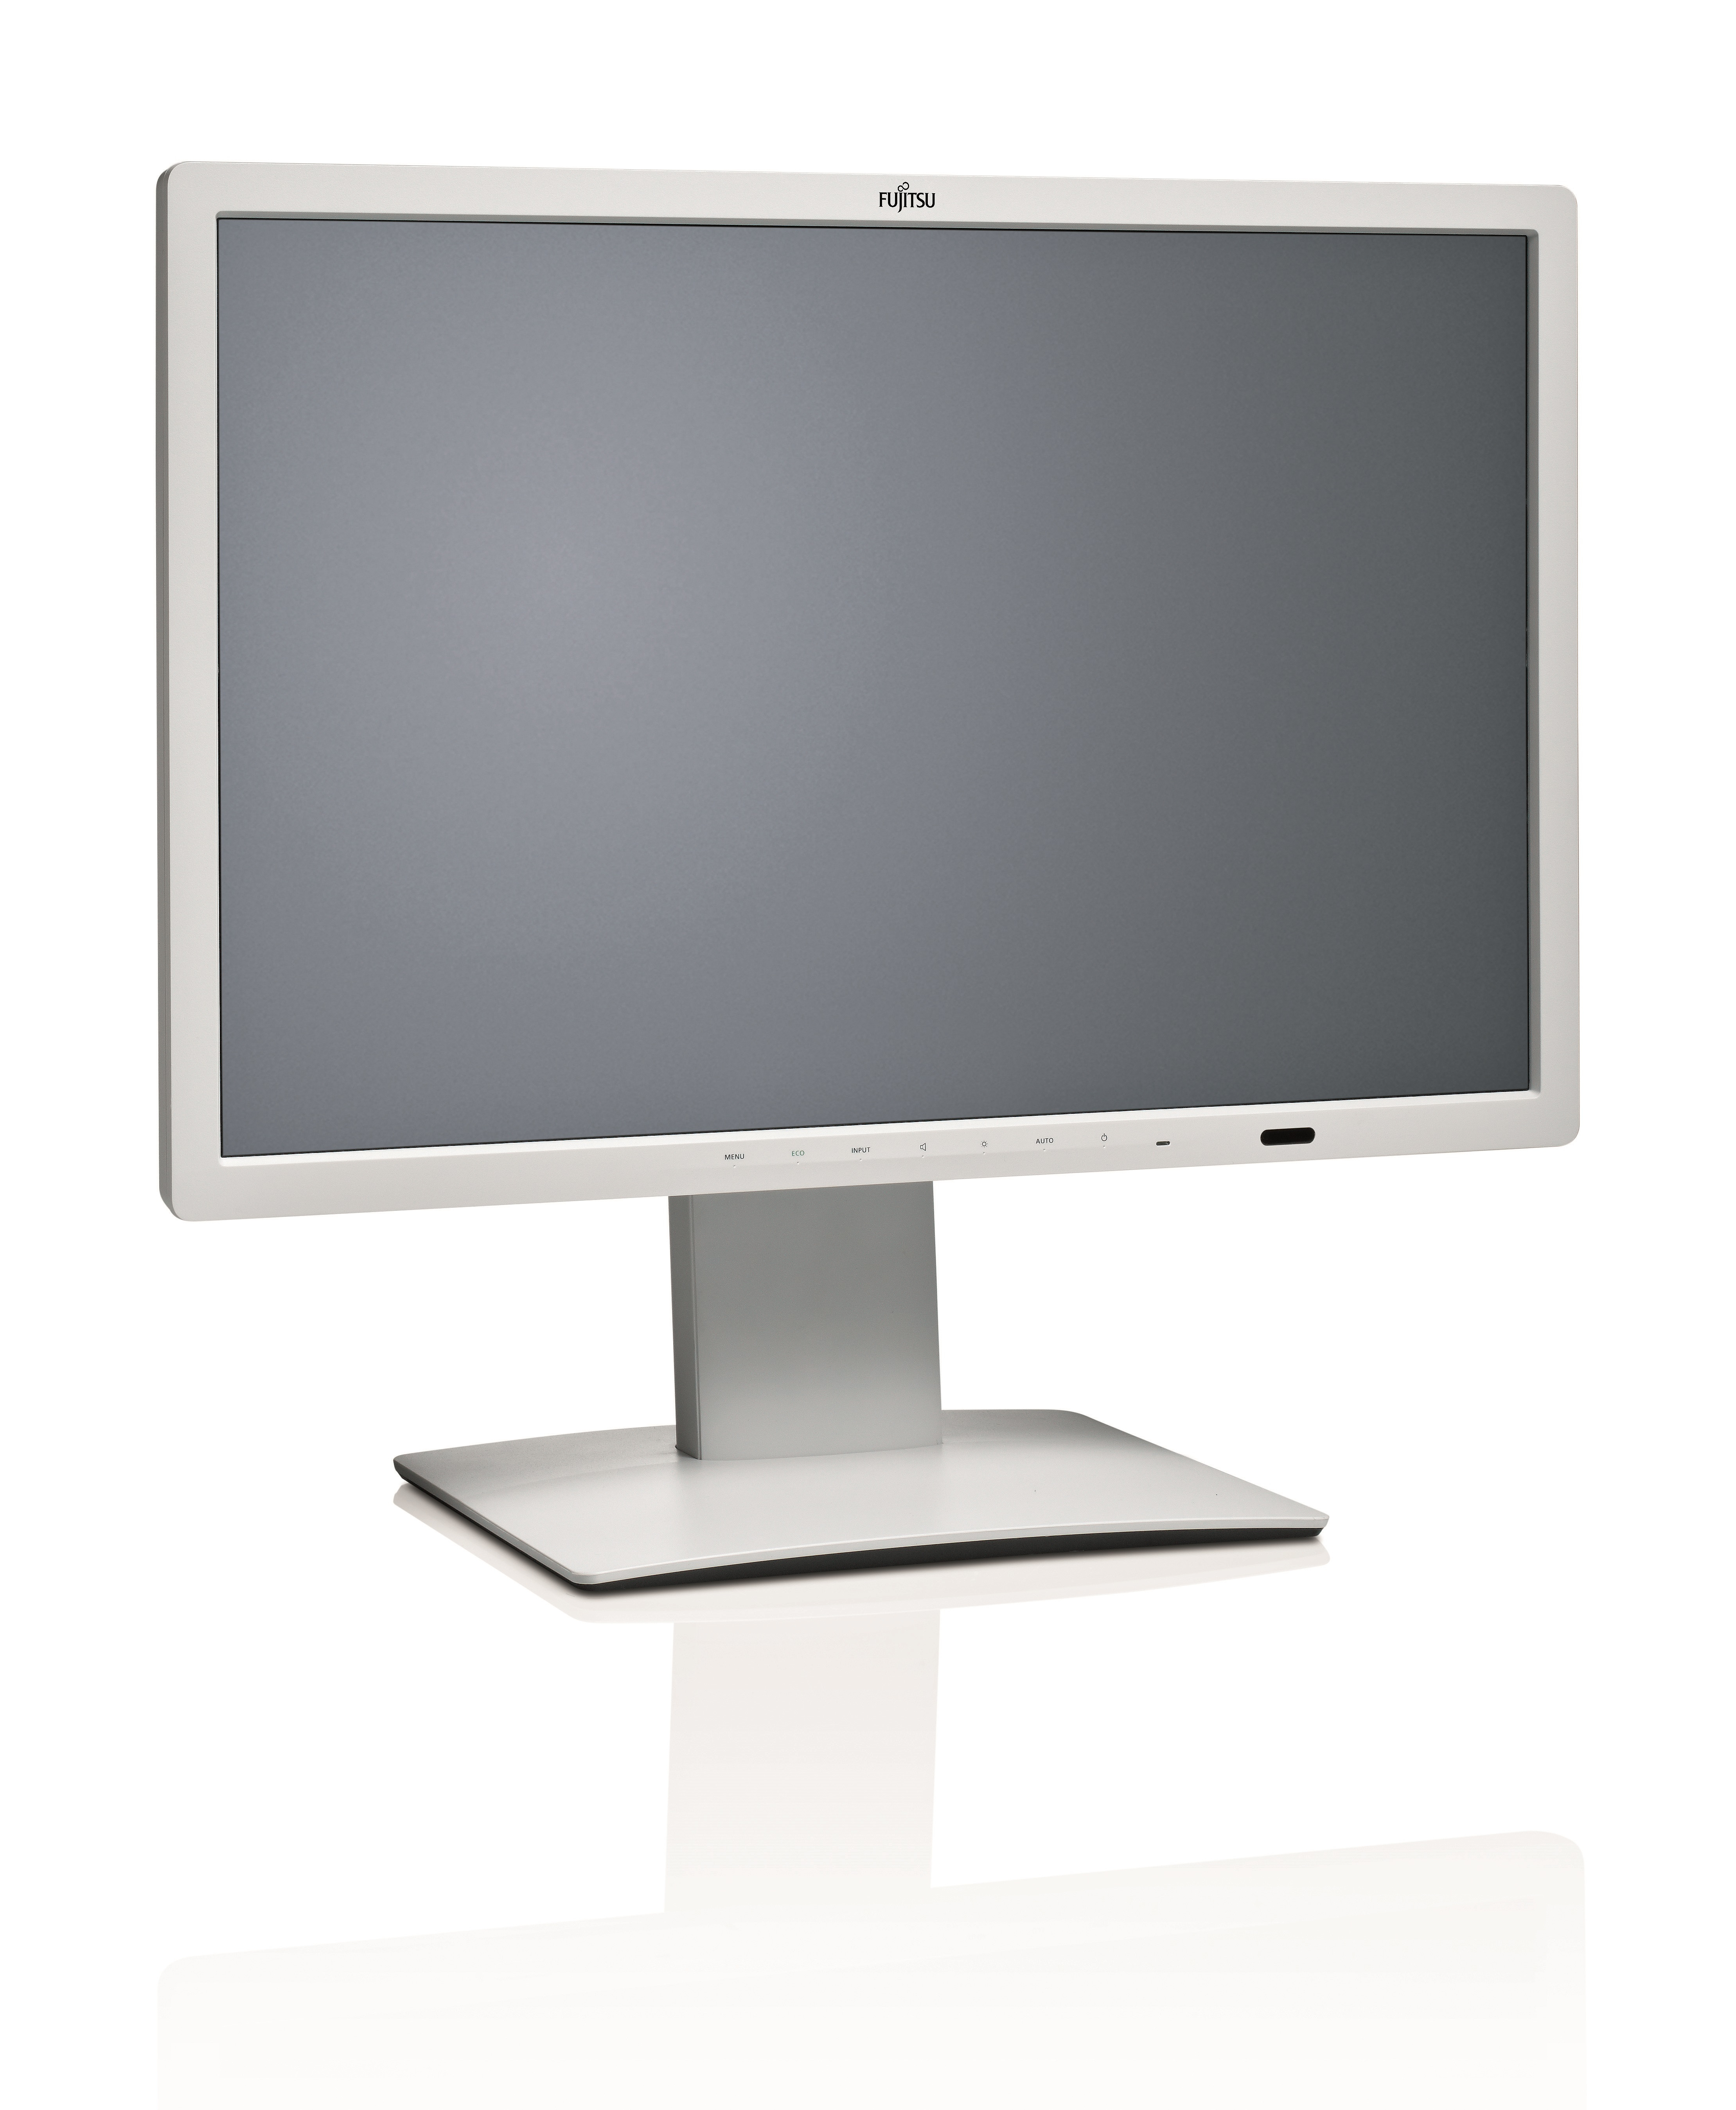 DISPLAY P24W-7 LED. EU cable. Business Line 61cm(24i)wide Display. Ultra Wide View.LED.marble grey. HDMI.MHL.DVI.VGA.USB. 4-in-1 Stand